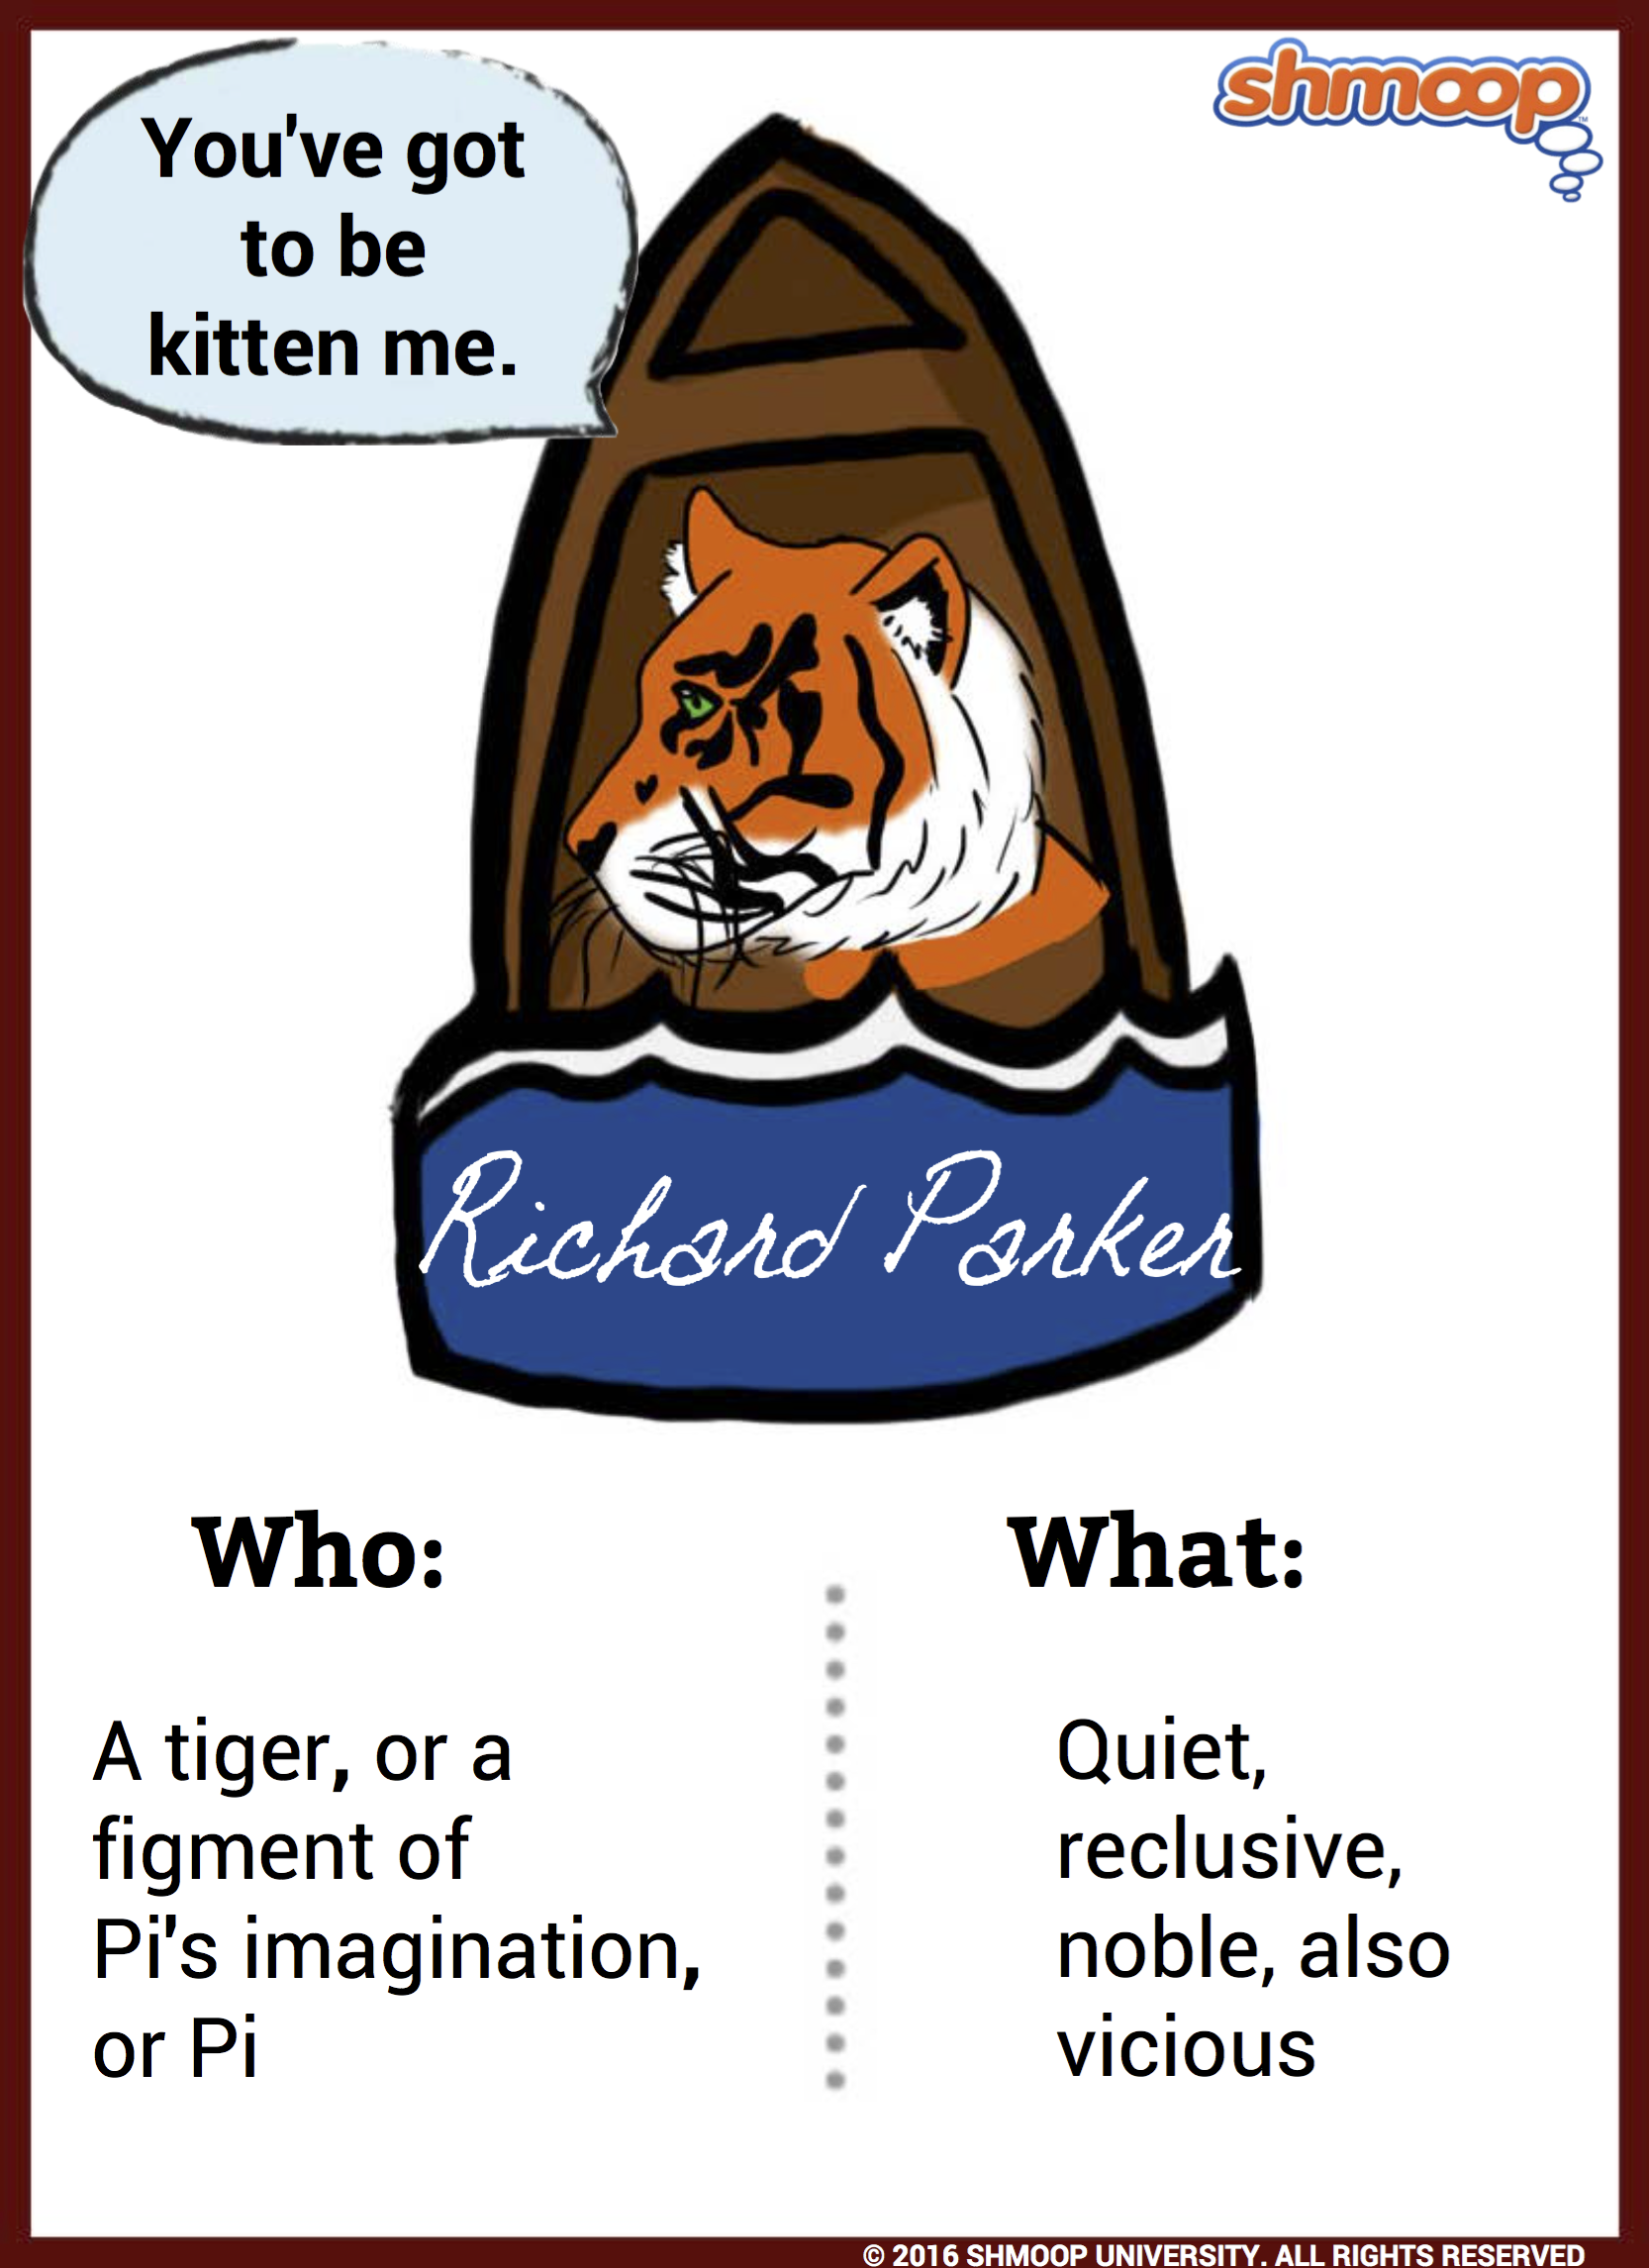 Richard parker in life of pi for What is the significance of pi s unusual name